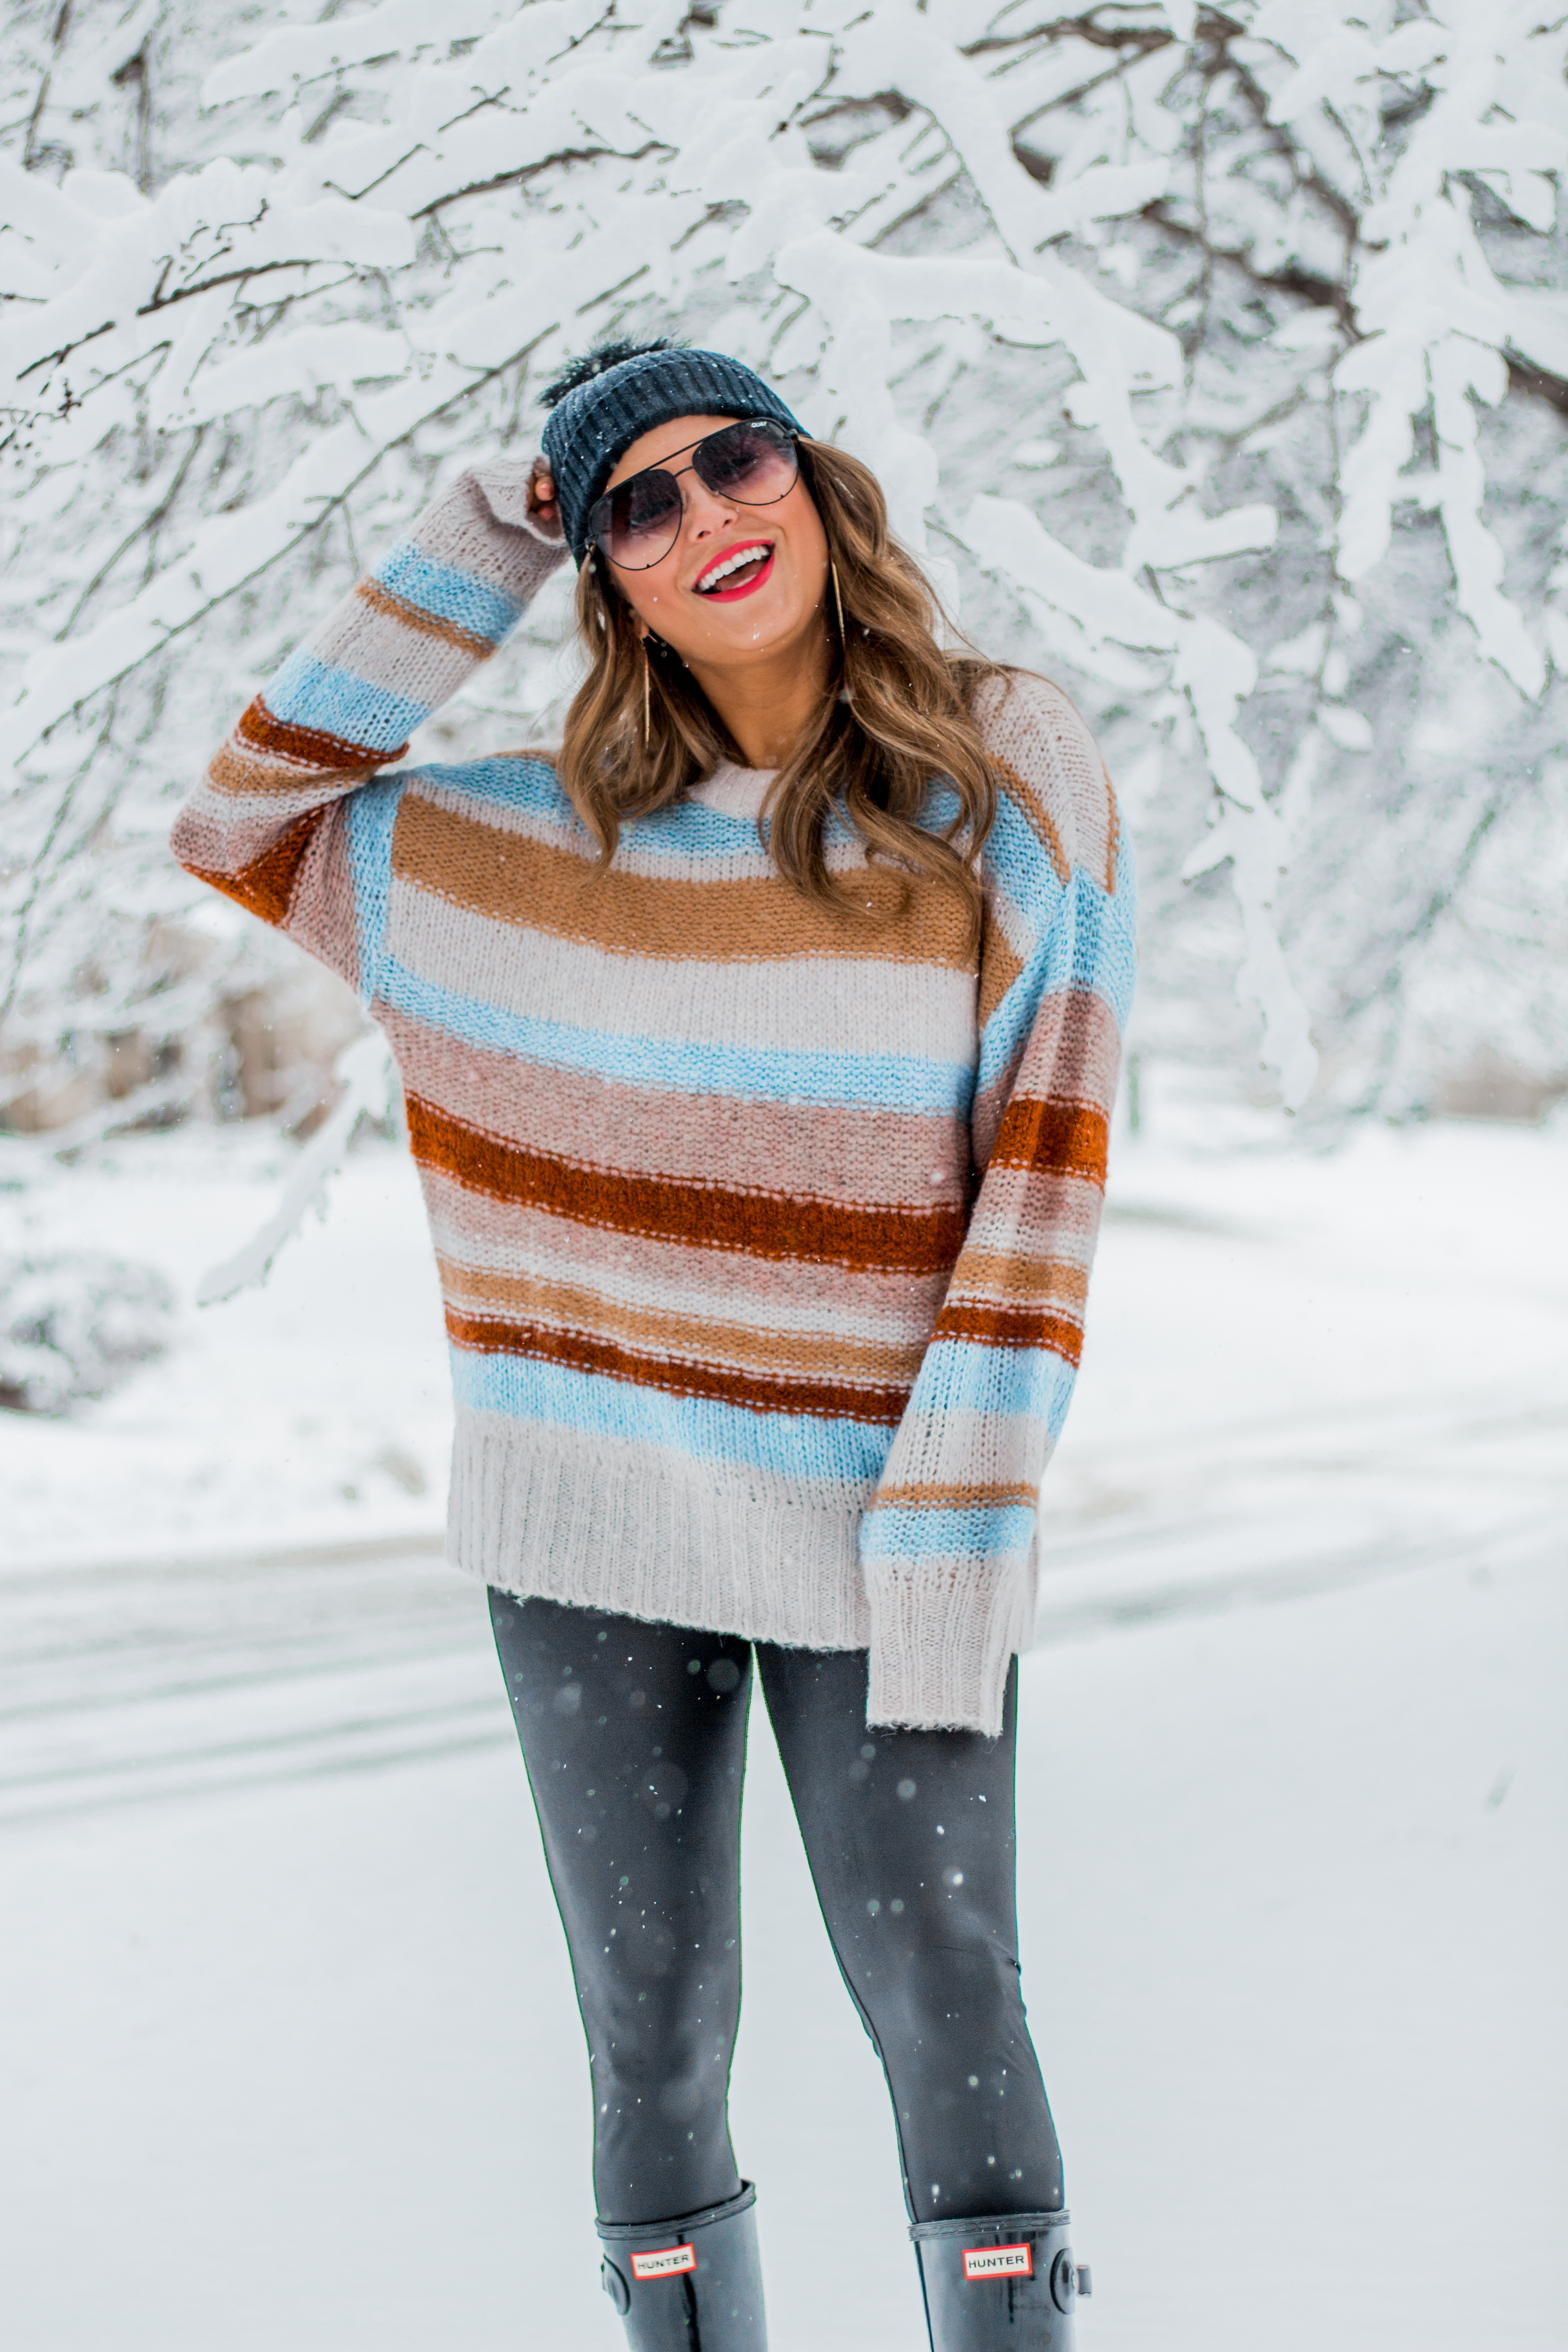 Women's Fashion - American Eagle Sweater - Hunter Boots - Beanie - Snow Day - OOTD - Fashion Blogger - Winter Fashion - 8